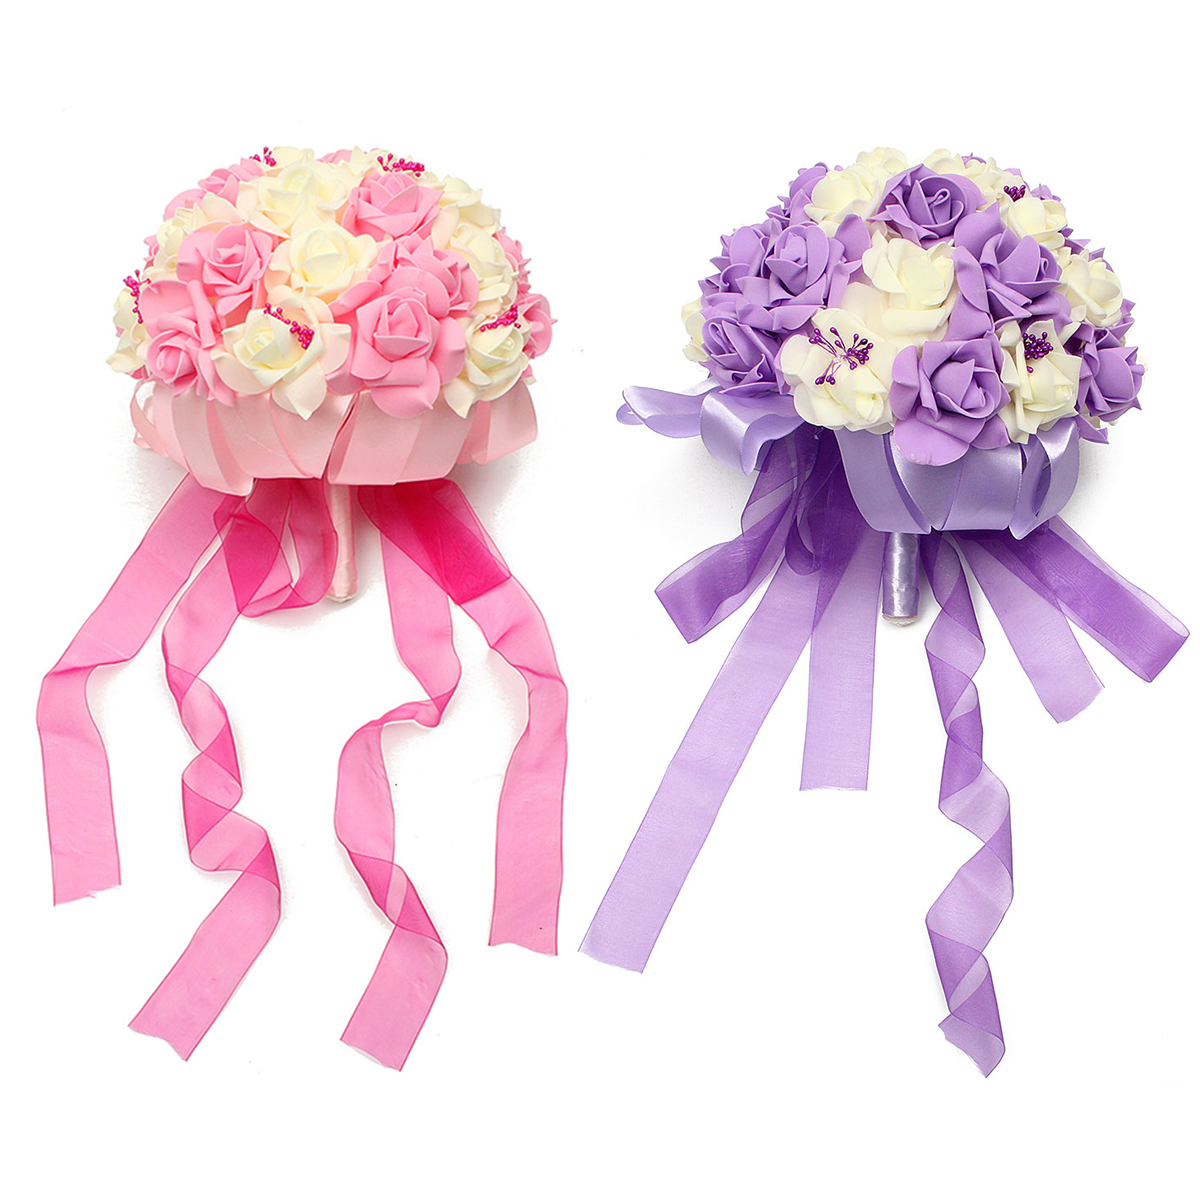 Bride Artificial Foam Roses Bouquet Pink Purple Silk Ribbon Wedding Bridesmaid Flower Girls